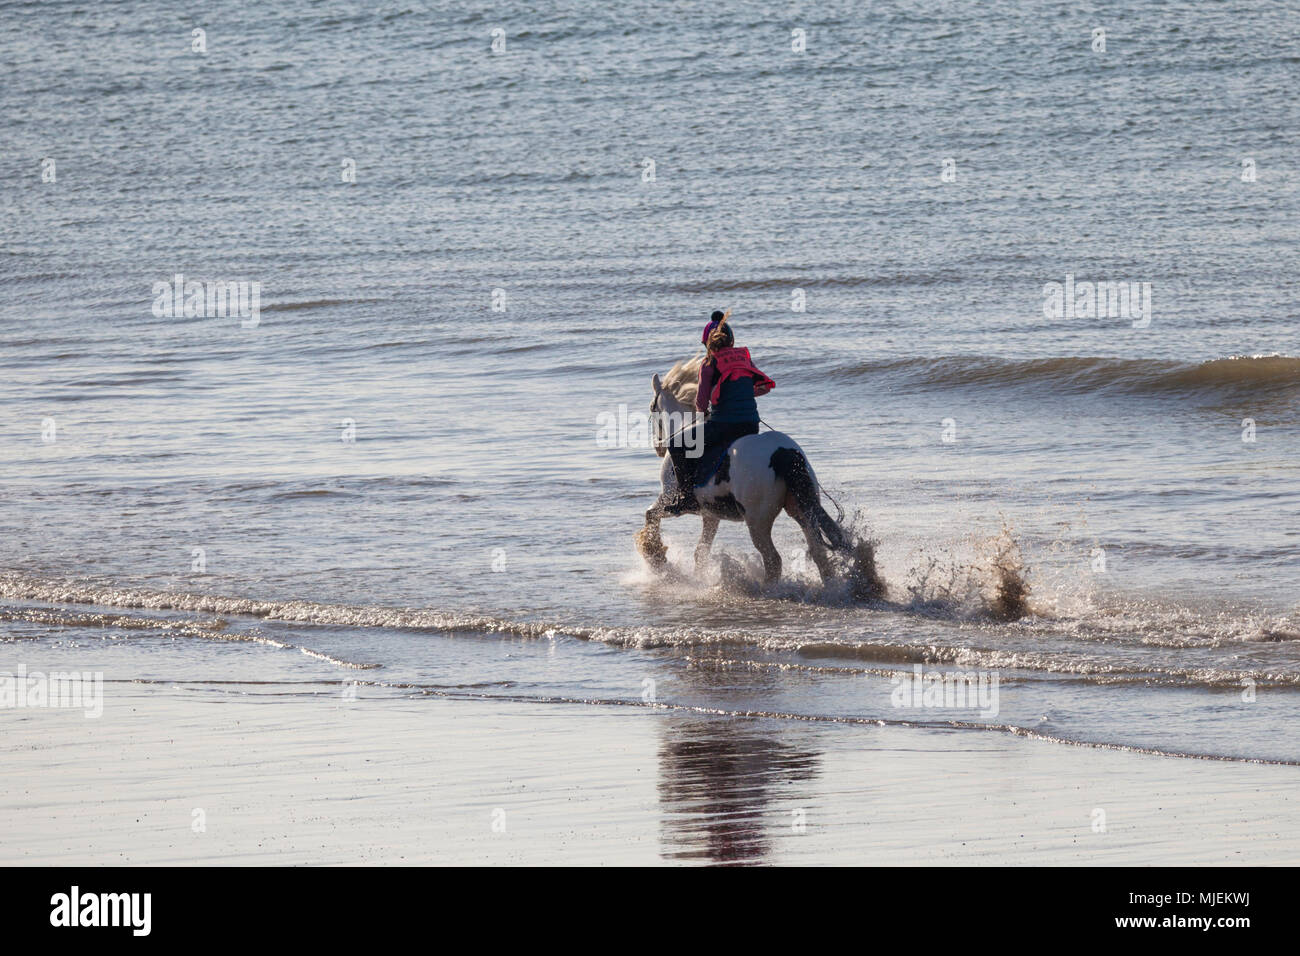 horse-rider-on-a-beach-hastings-uk-MJEKW